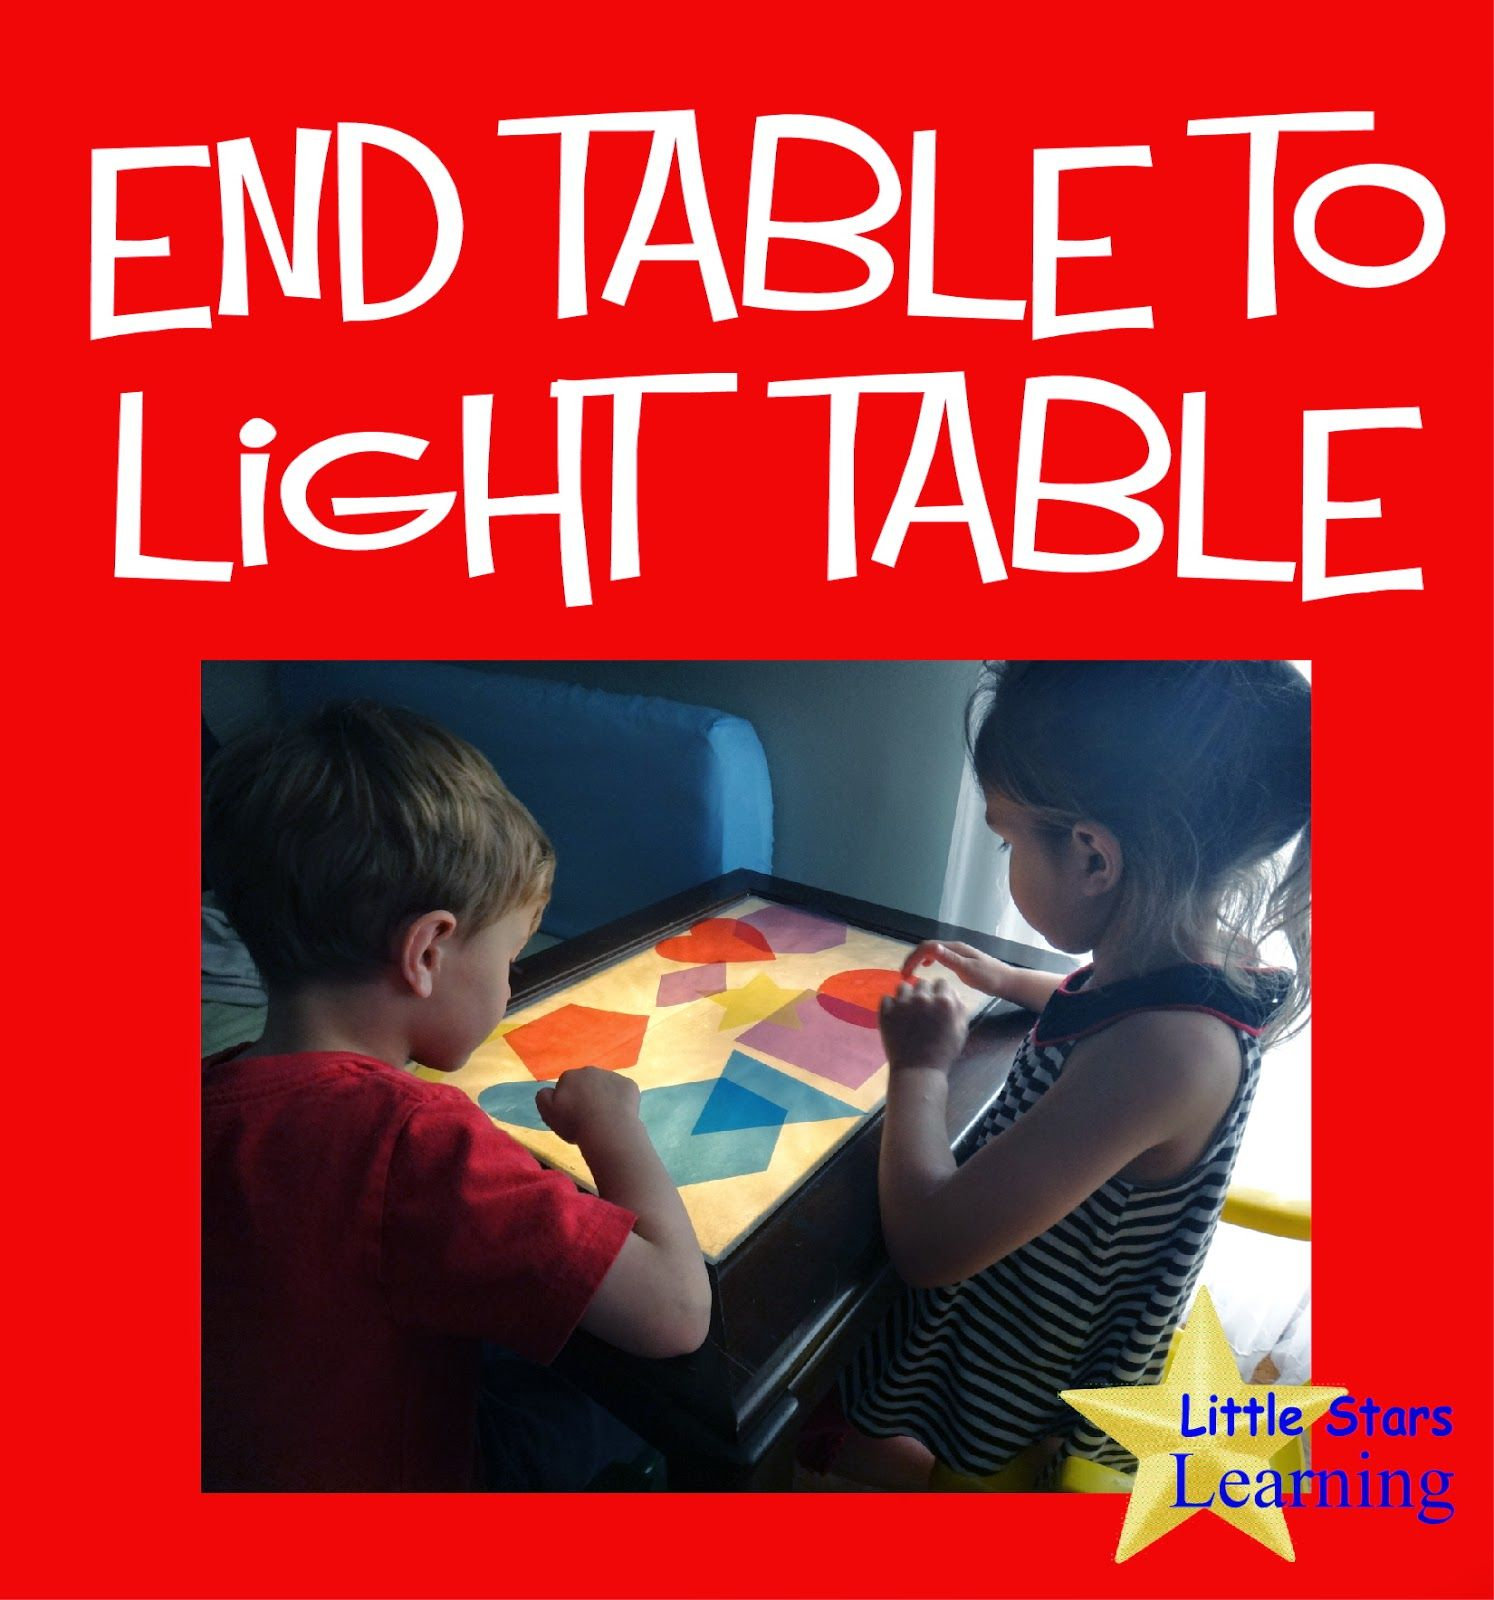 Little Stars Learning: End Table to Light Table